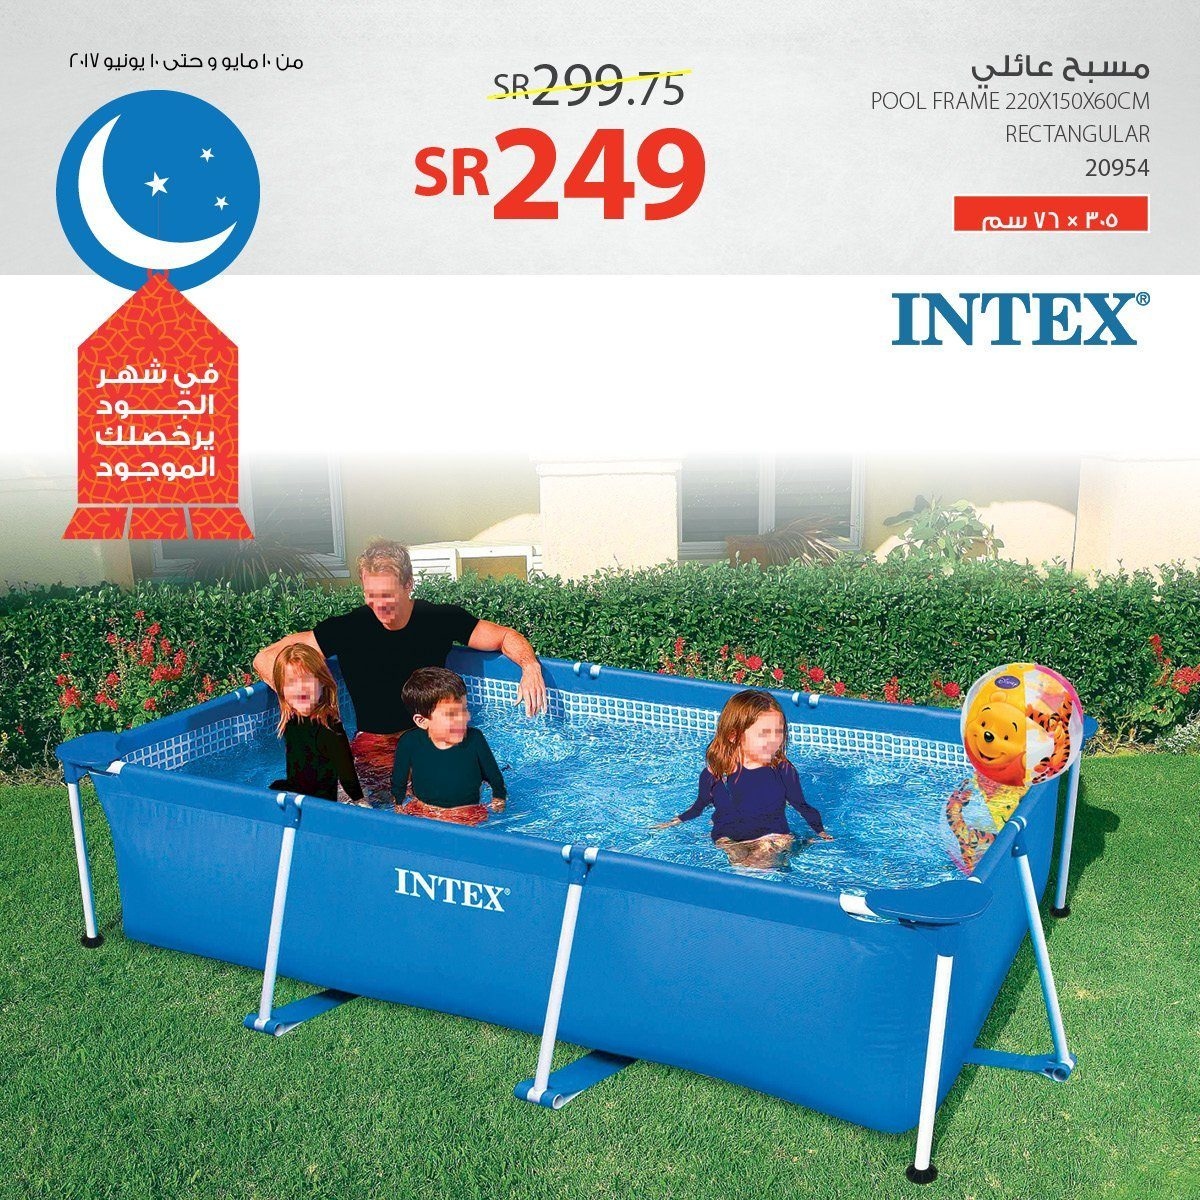 39 censored 39 saudi swimming pool ad turns woman into an inflatable ball society 39 s child